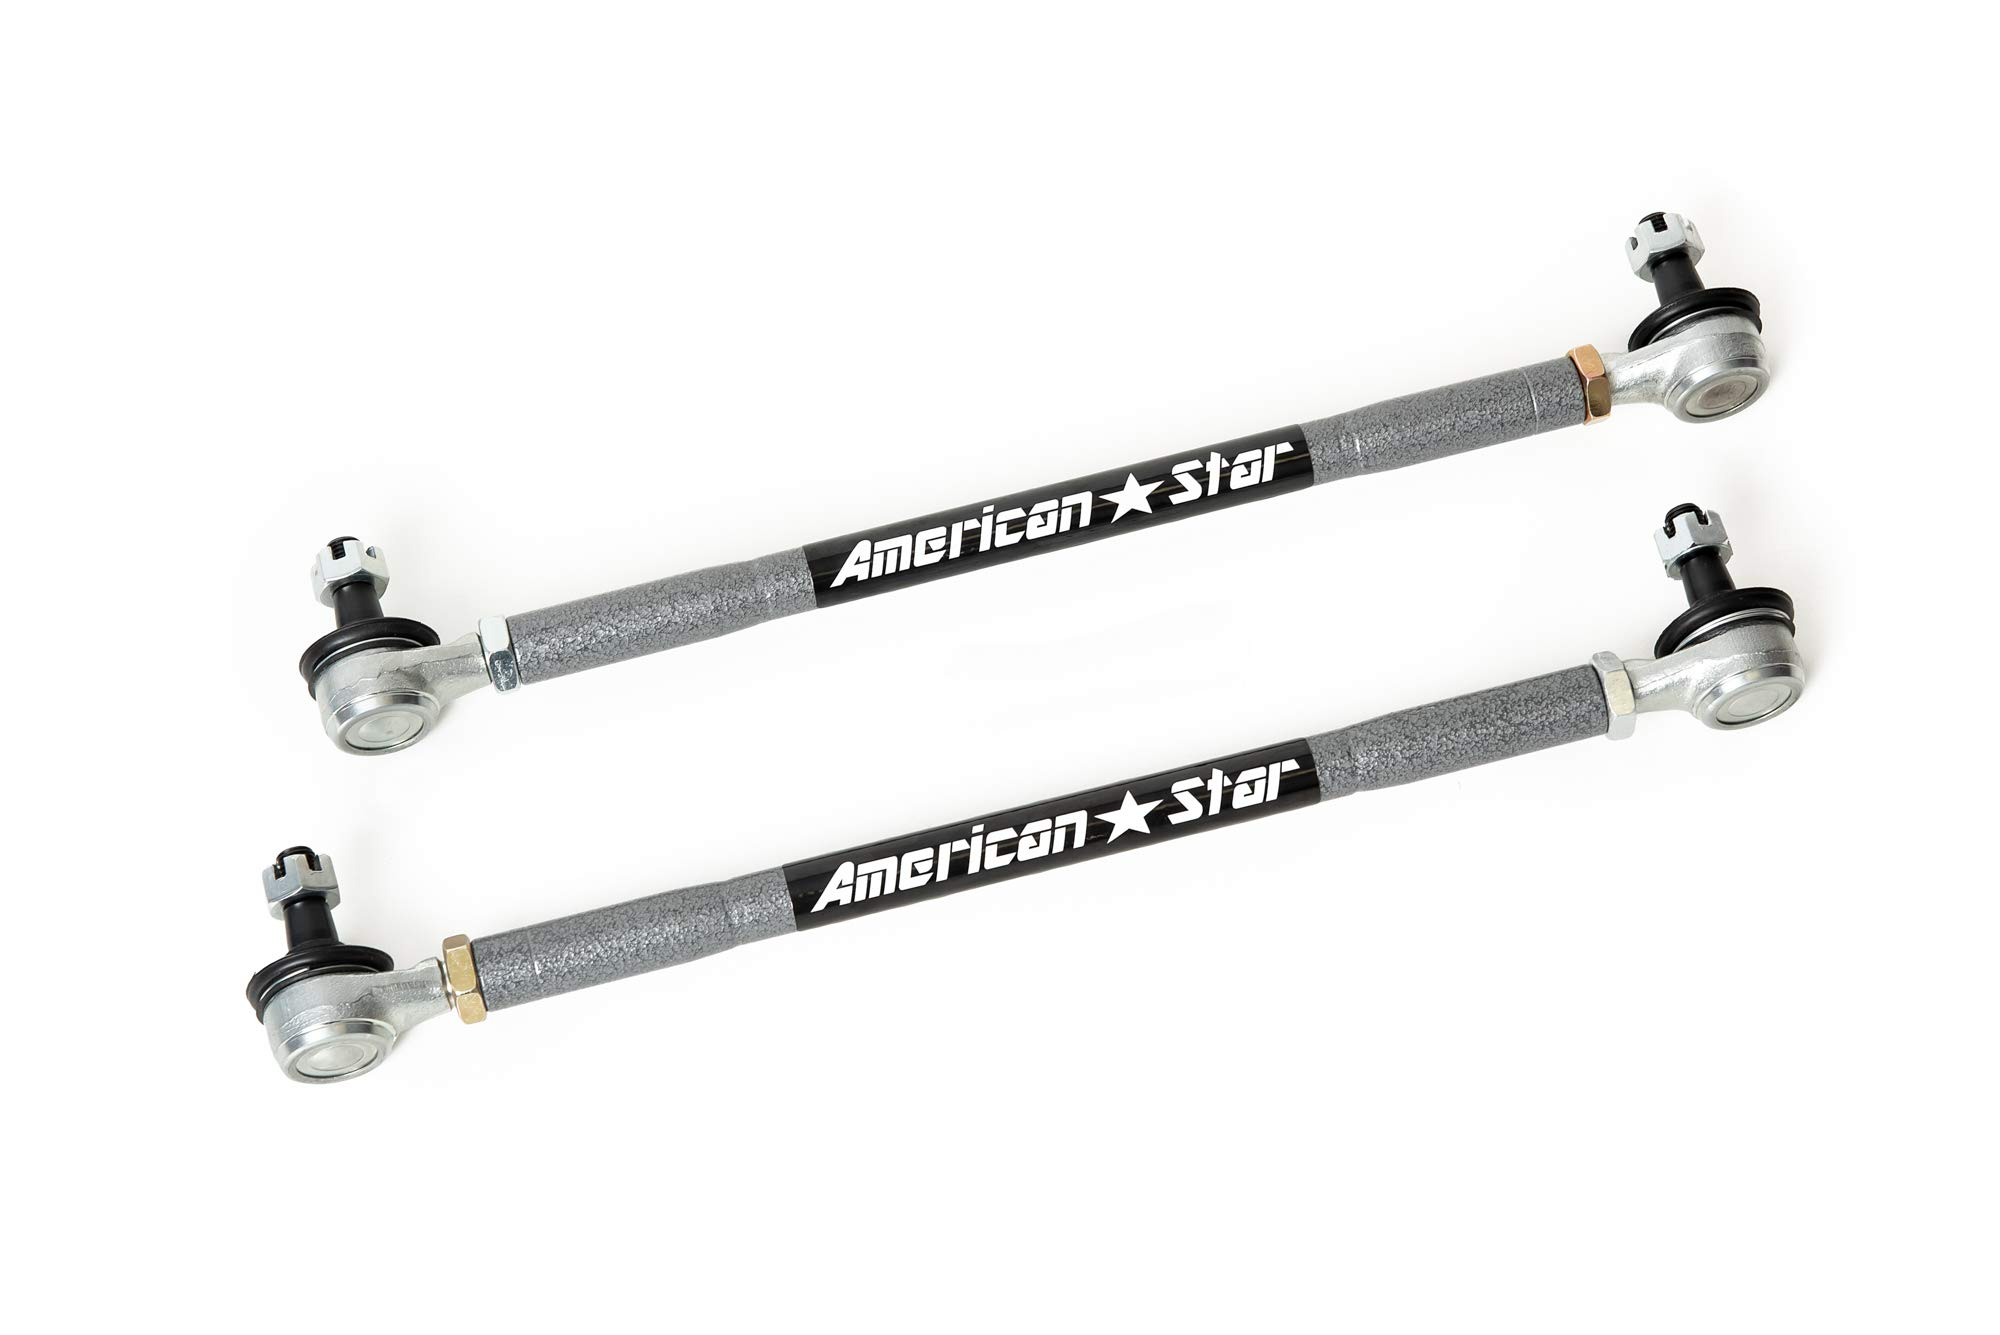 American Star 4130 Chromoly Tie Rod Upgrade Kit for All Years Polaris RZR 170 by Unknown